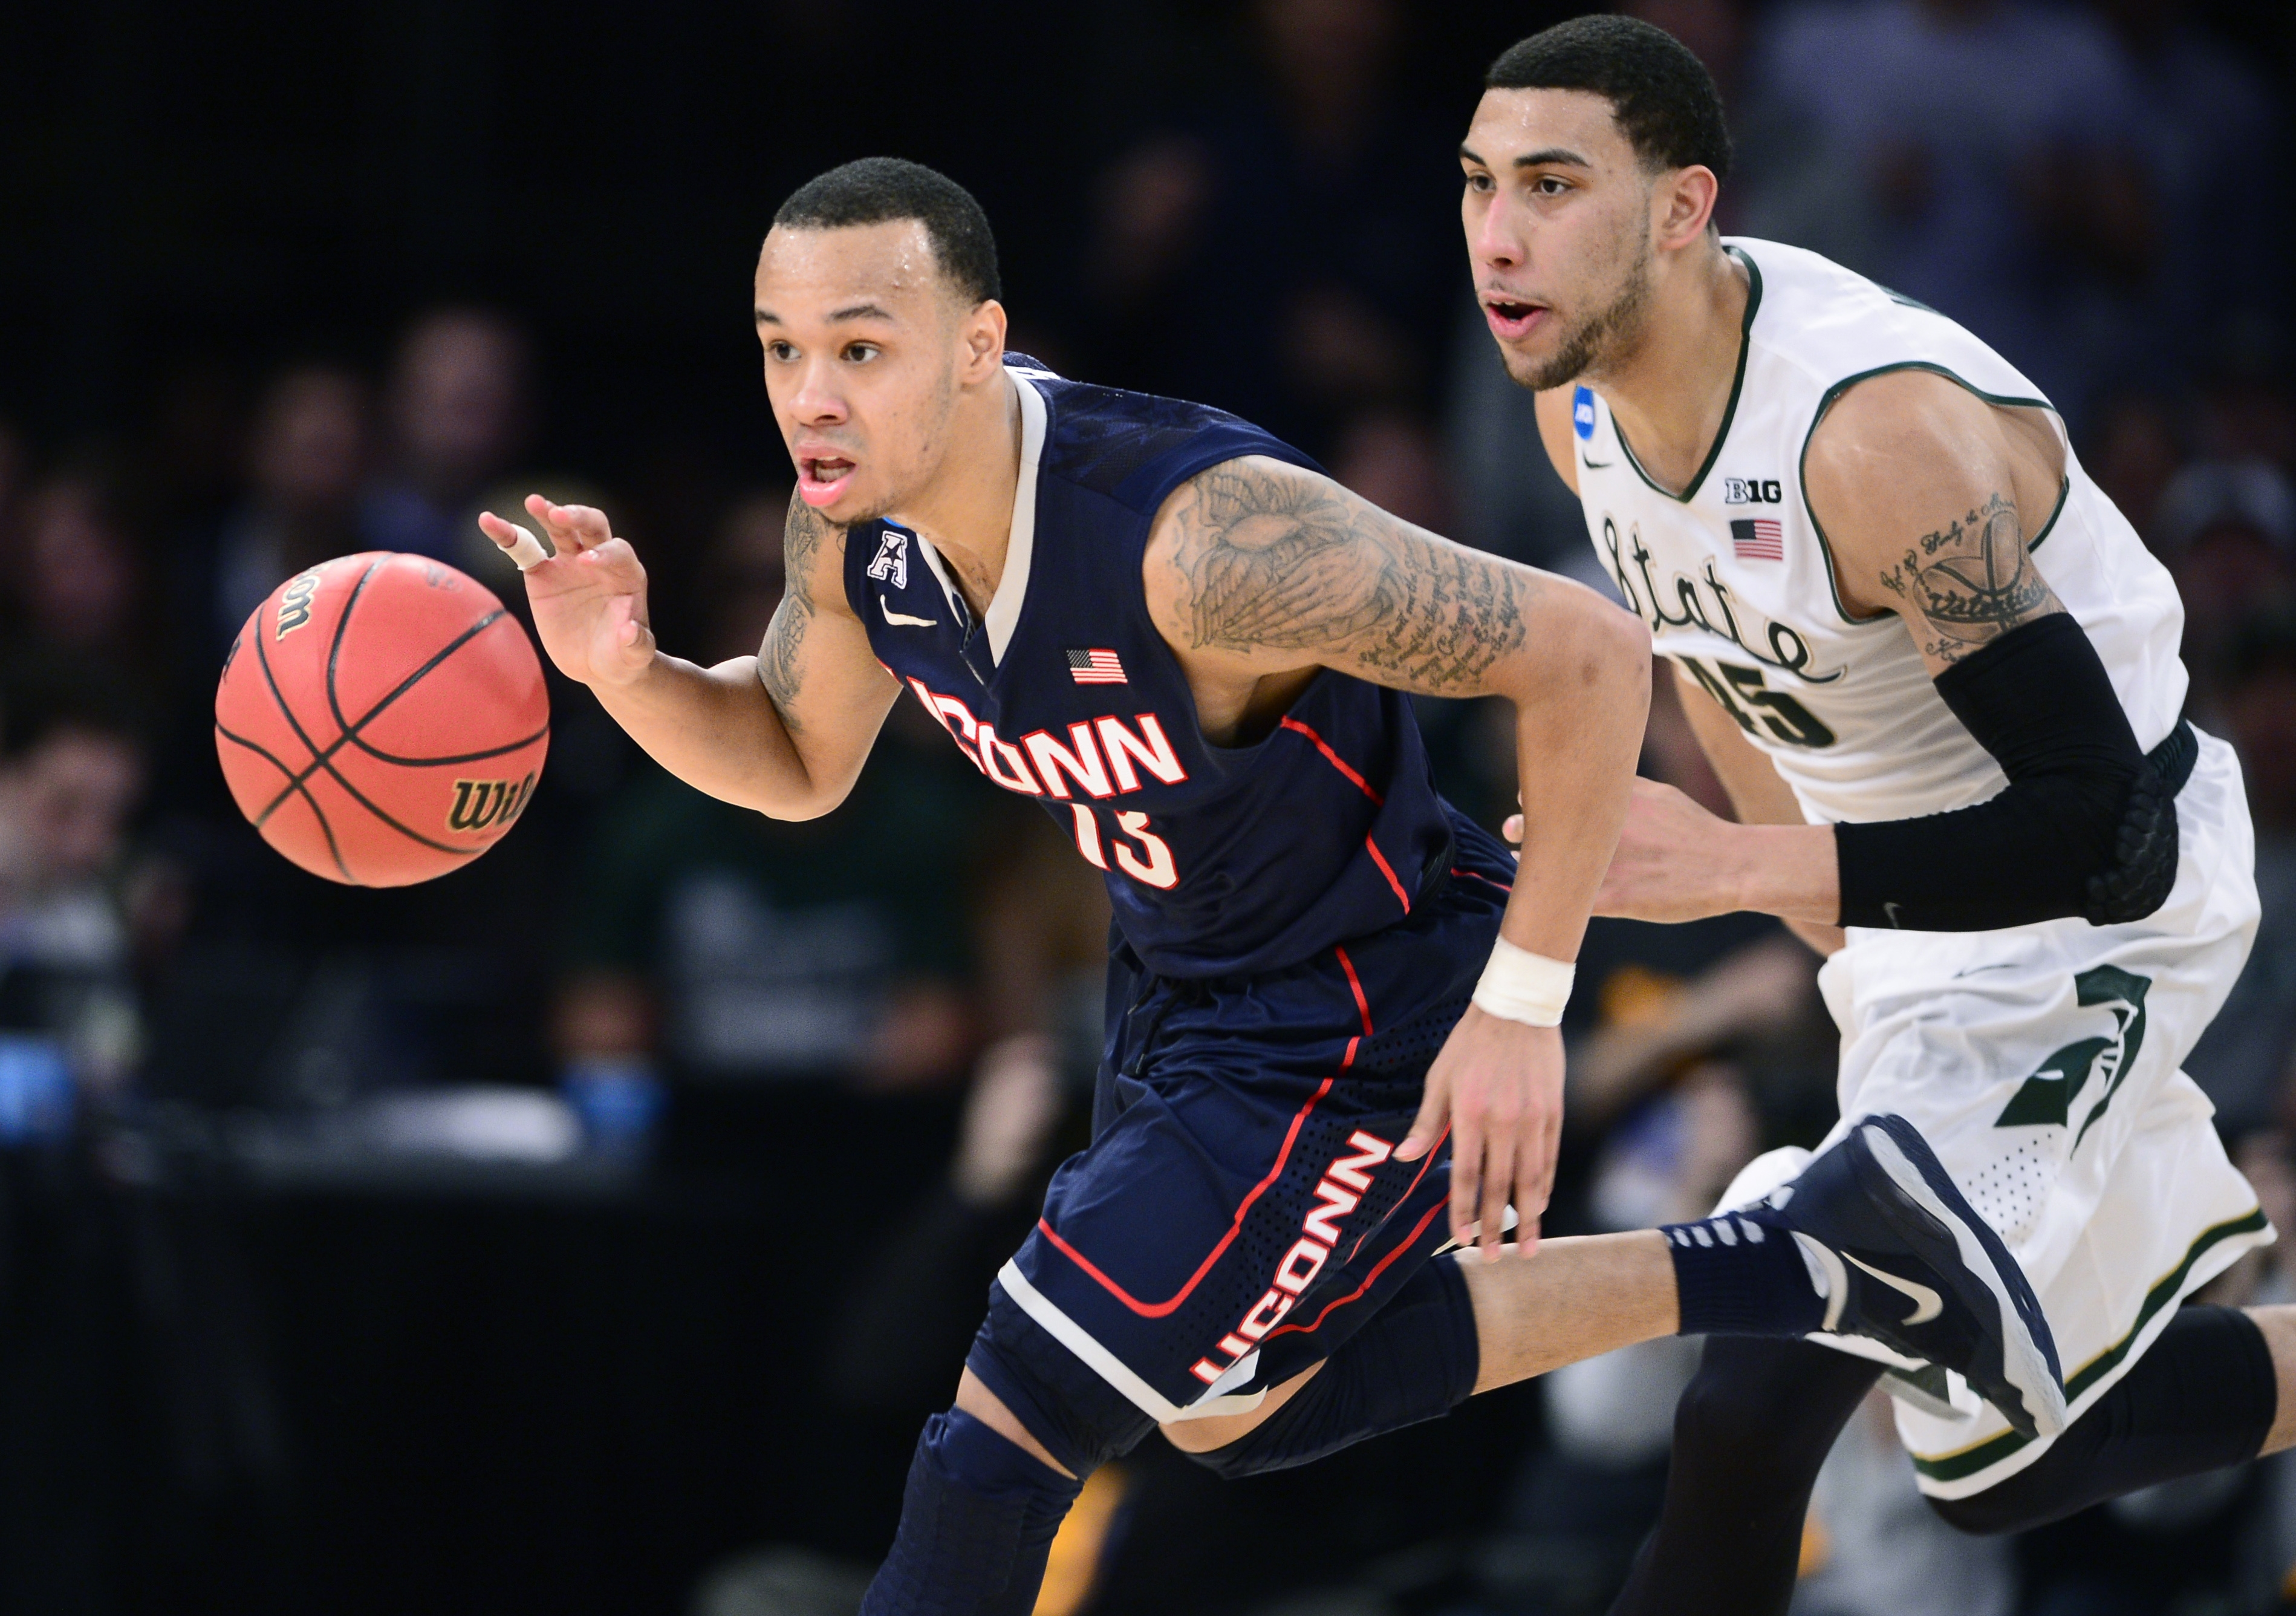 Connecticut point guard Shabazz Napier, charging past Michigan State's Denzel Valentine, led all scorers with 25 points Sunday and was named most outstanding player of the regional.